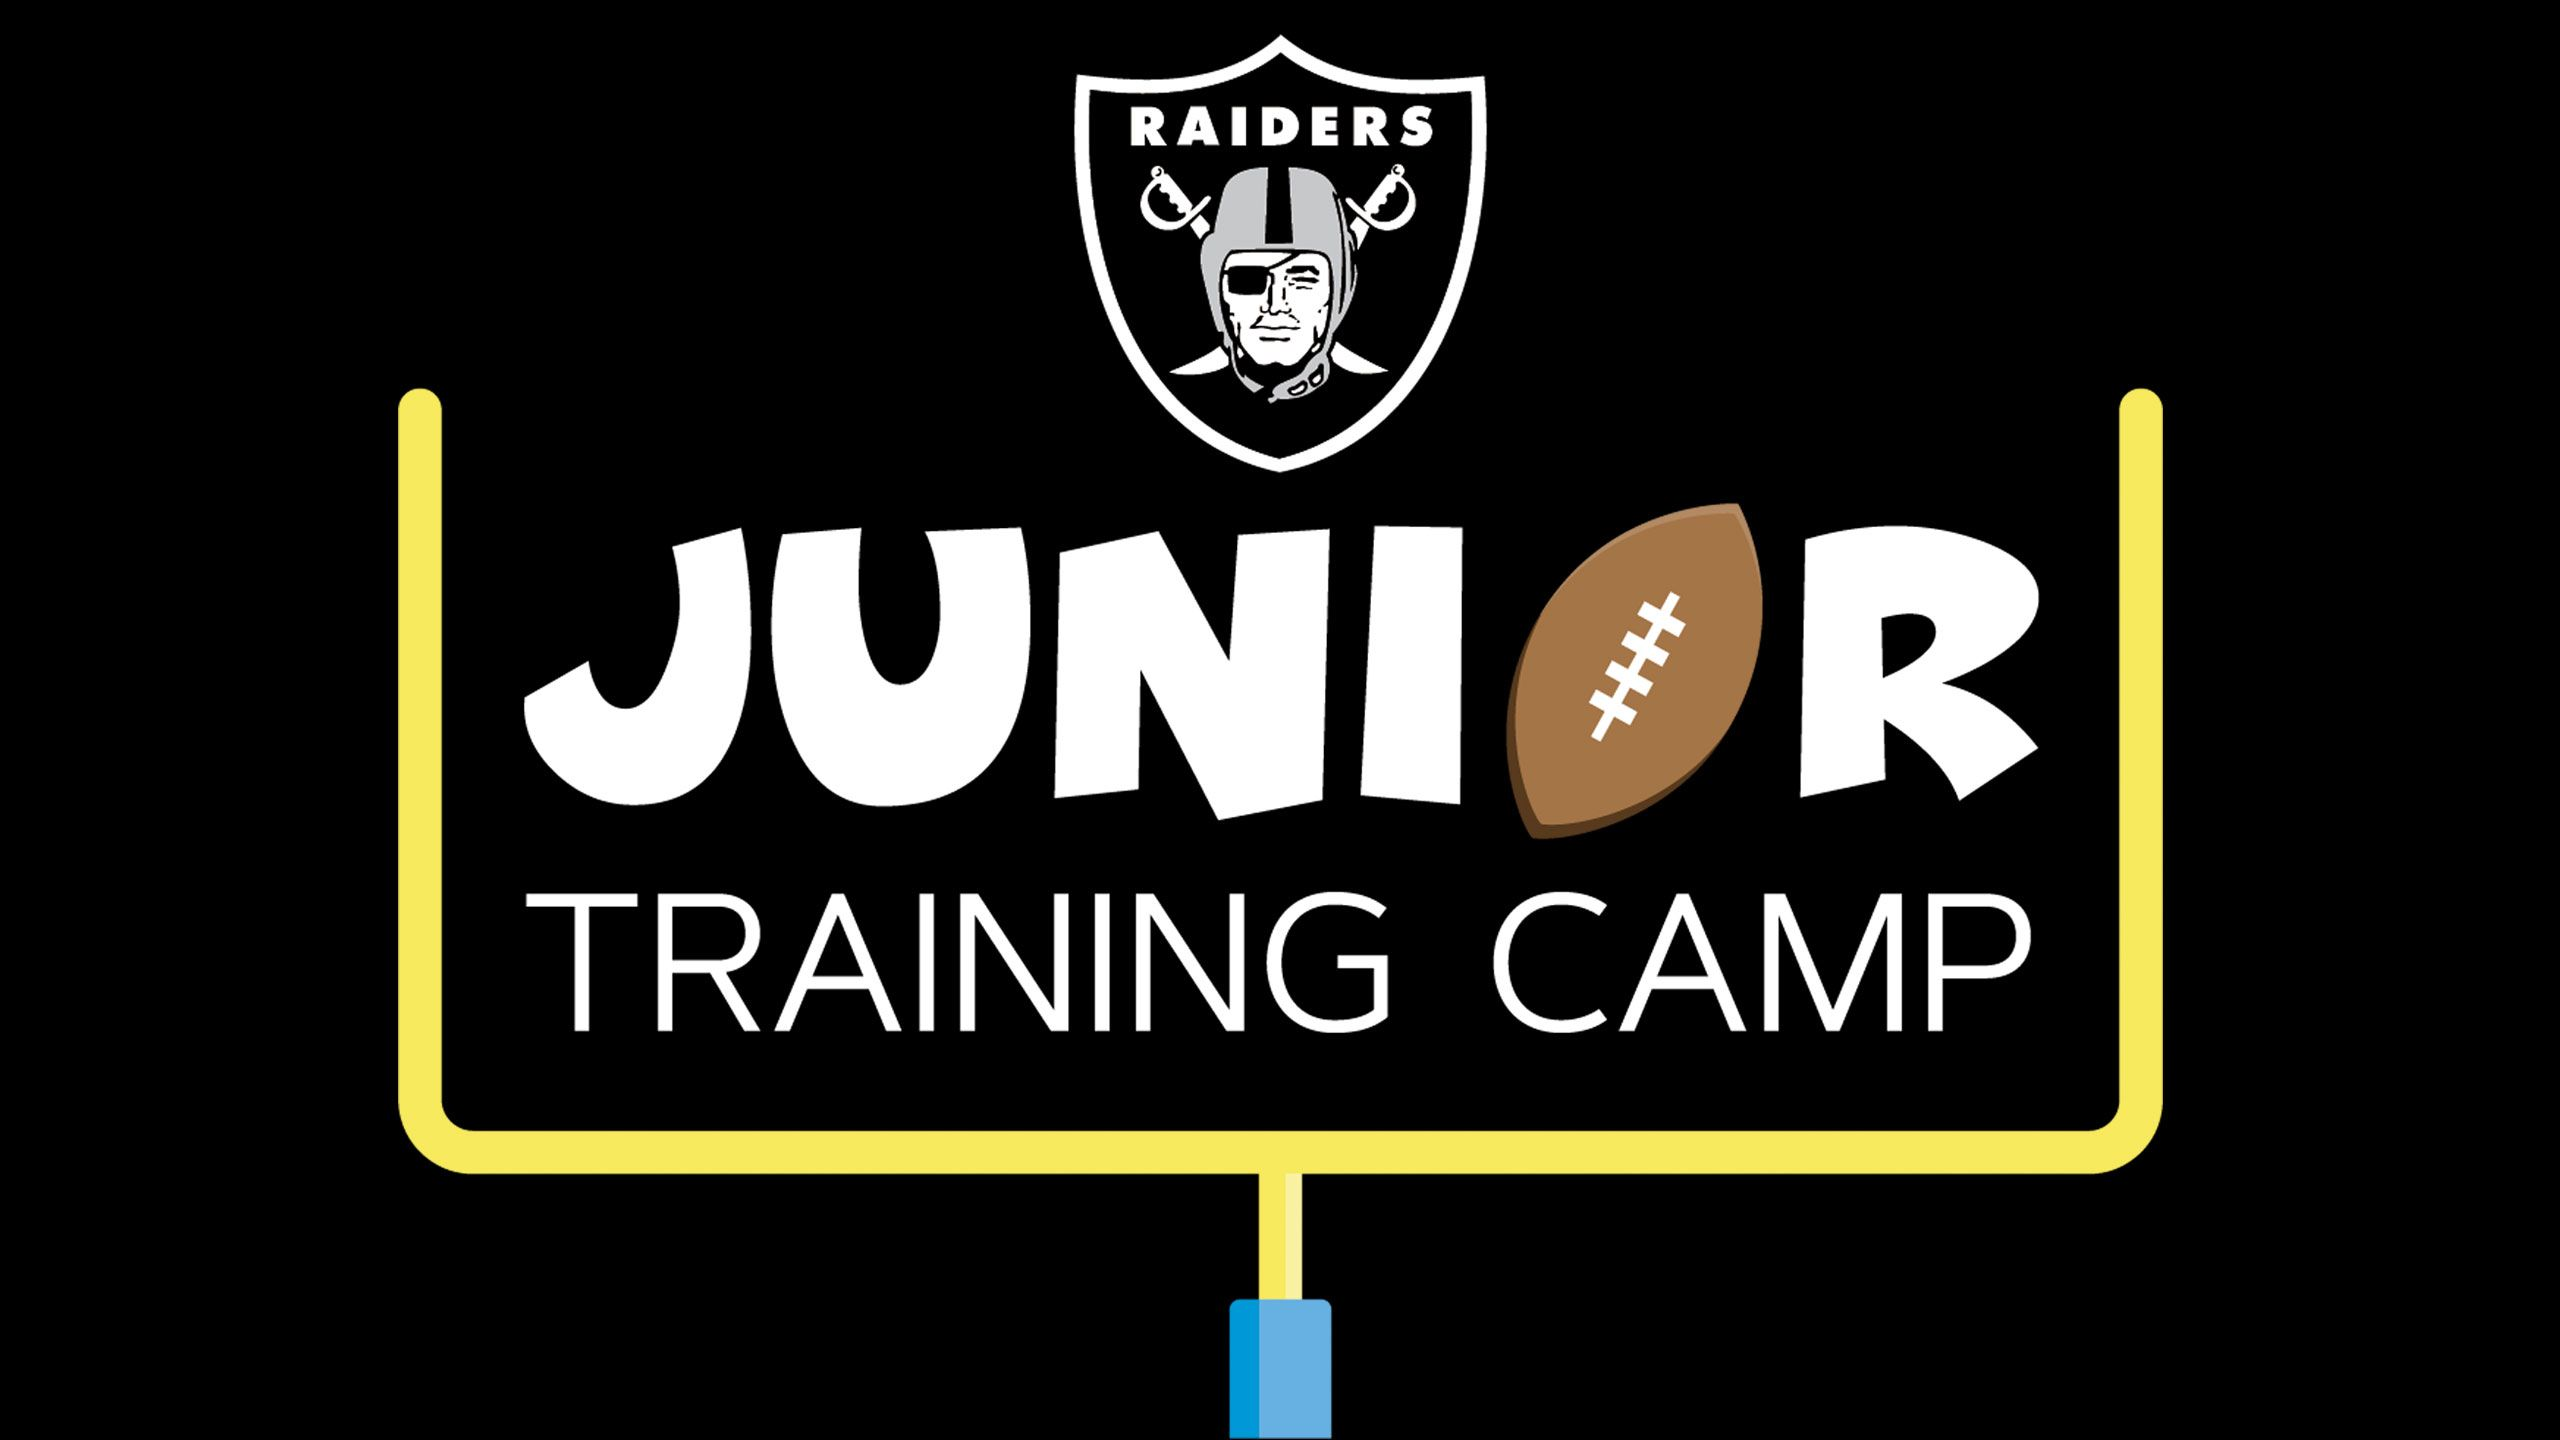 Raiders Junior Training Camp